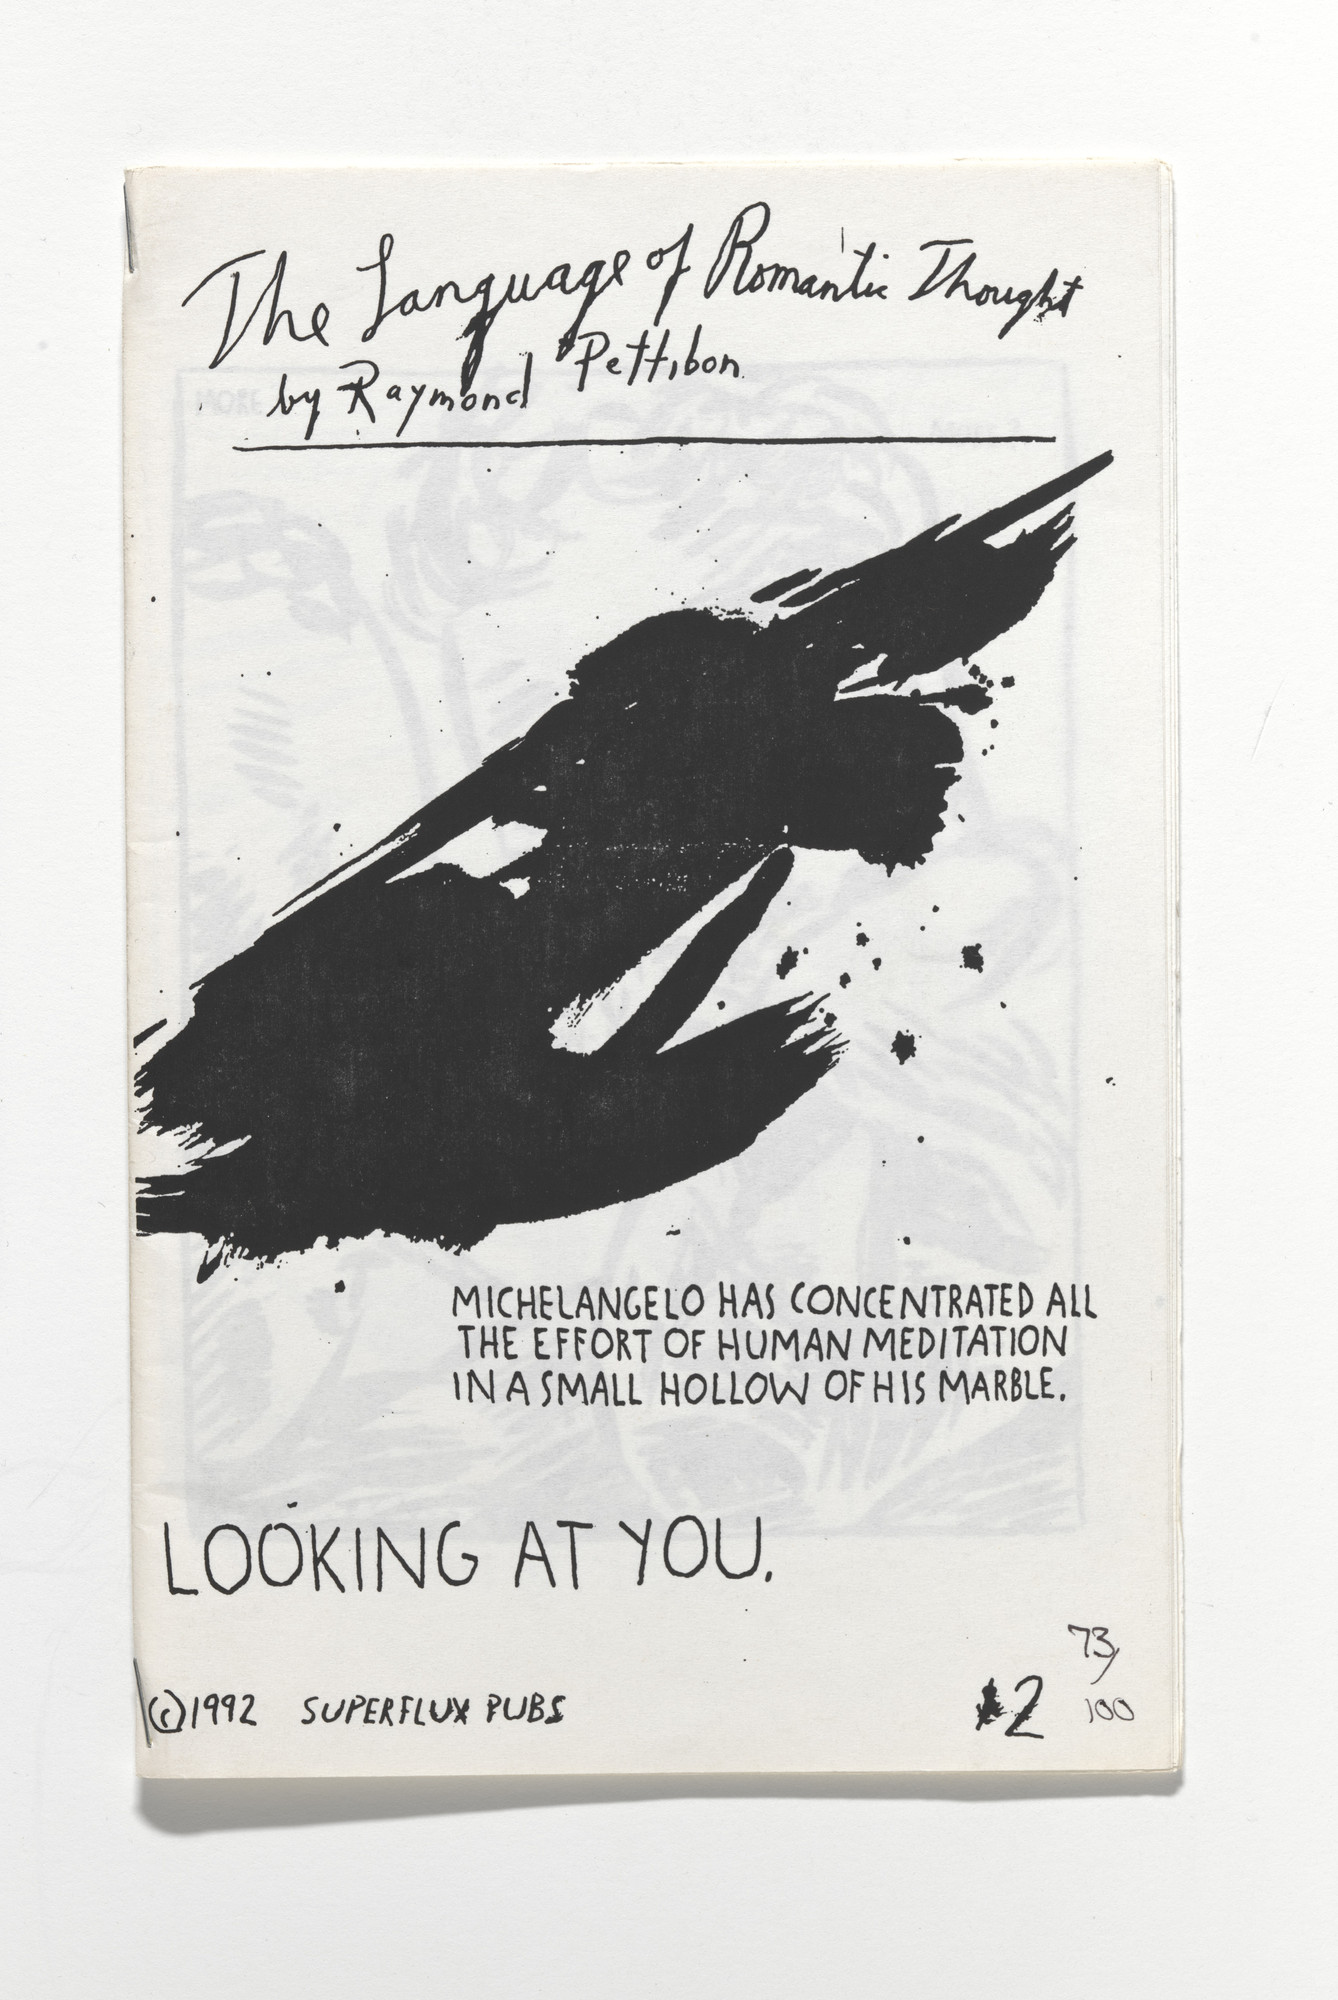 Raymond Pettibon. The Language of Romantic Thought. 1992